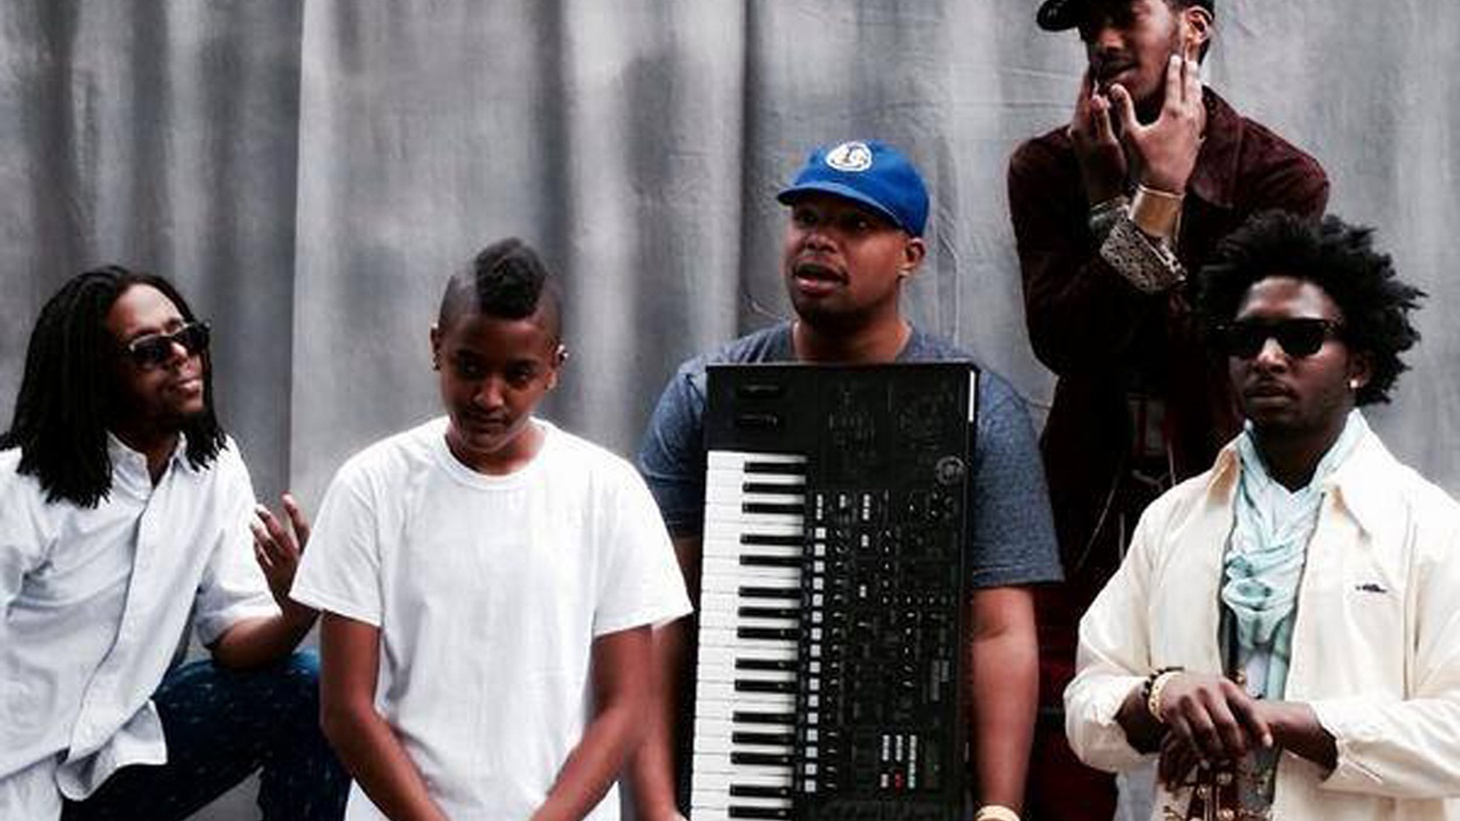 Seductive, soulful and filled with swagger, Odd Future affiliate Syd tha Kyd leads an incredible group of LA musicians known as The Internet.